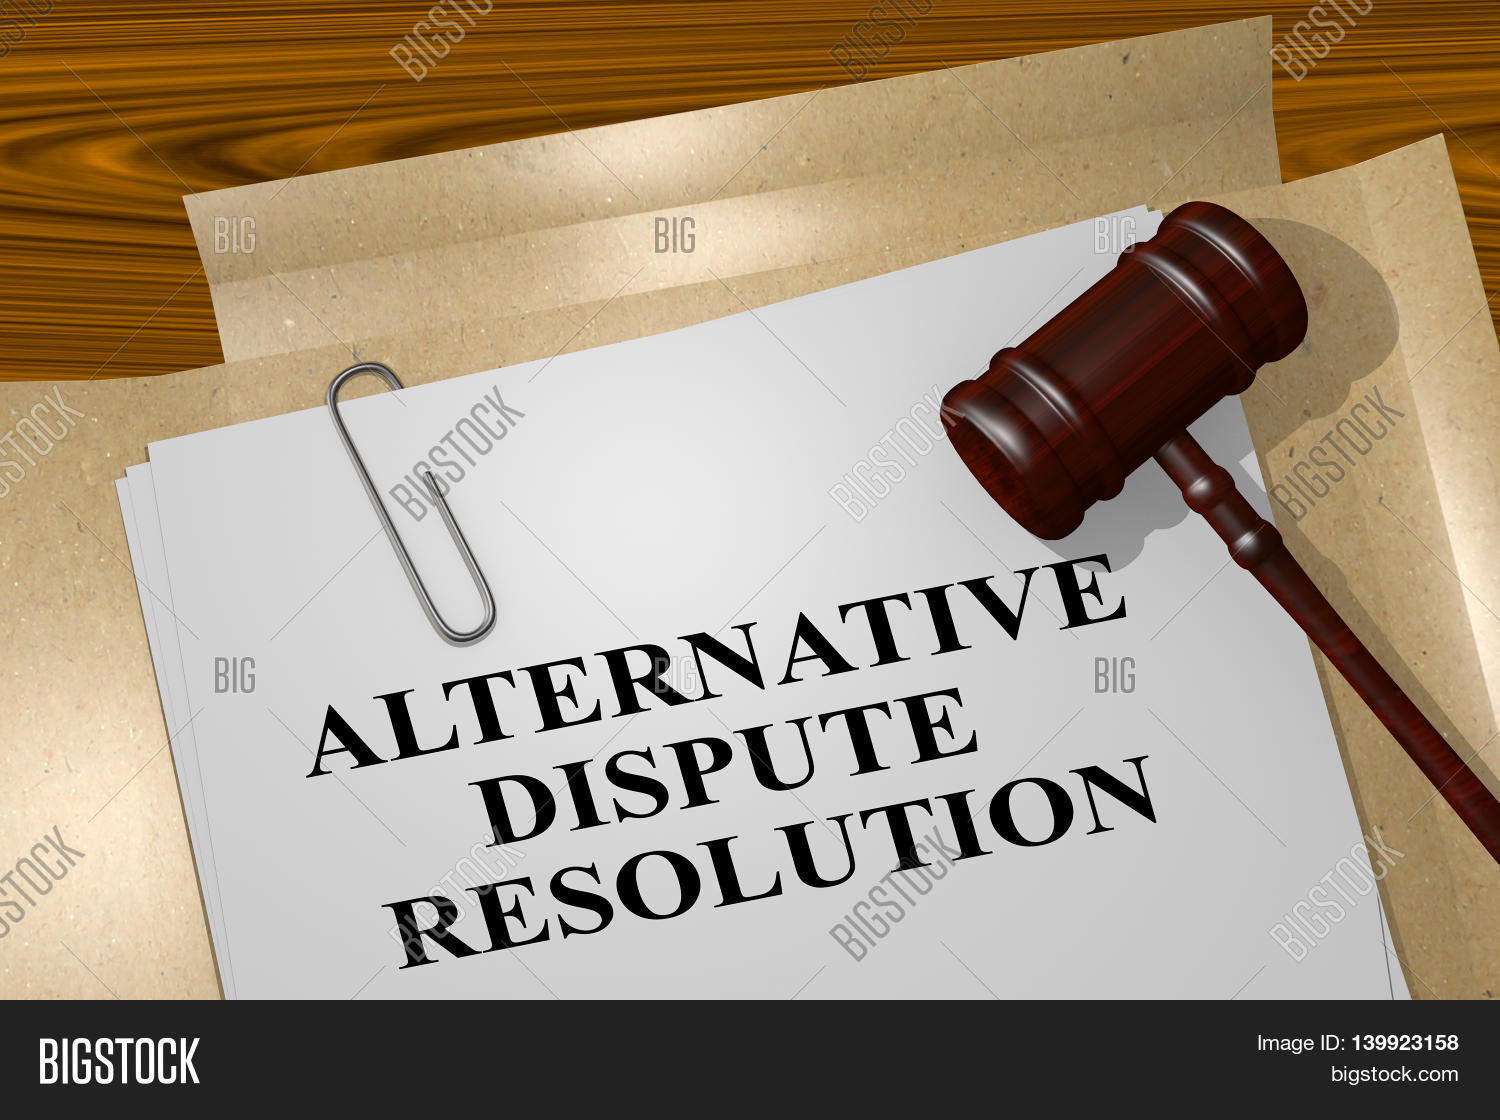 alternative dispute resolution 1 Alternative dispute resolution (adr) refers to any means of settling disputes outside of the courtroom adr typically includes early neutral evaluation, negotiation, conciliation, mediation, and arbitration.